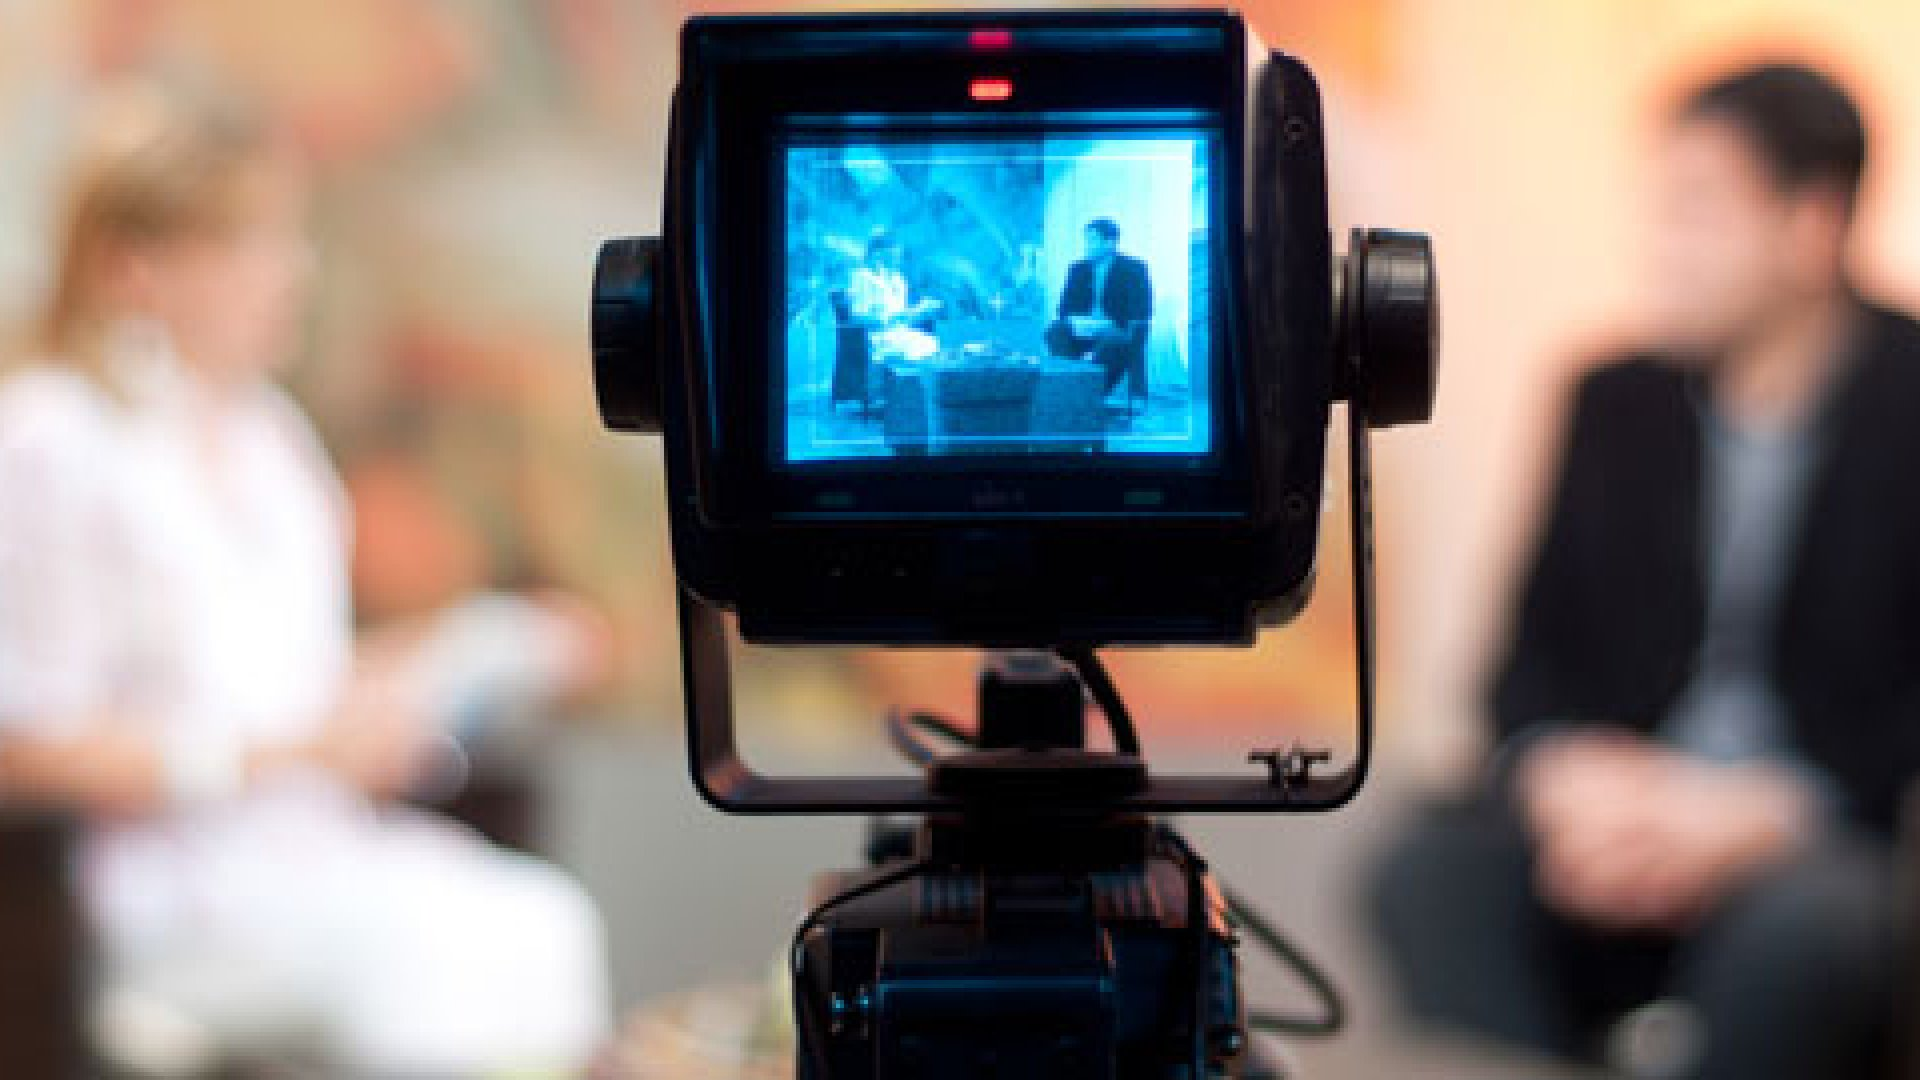 Use Video to Inspire Your Team